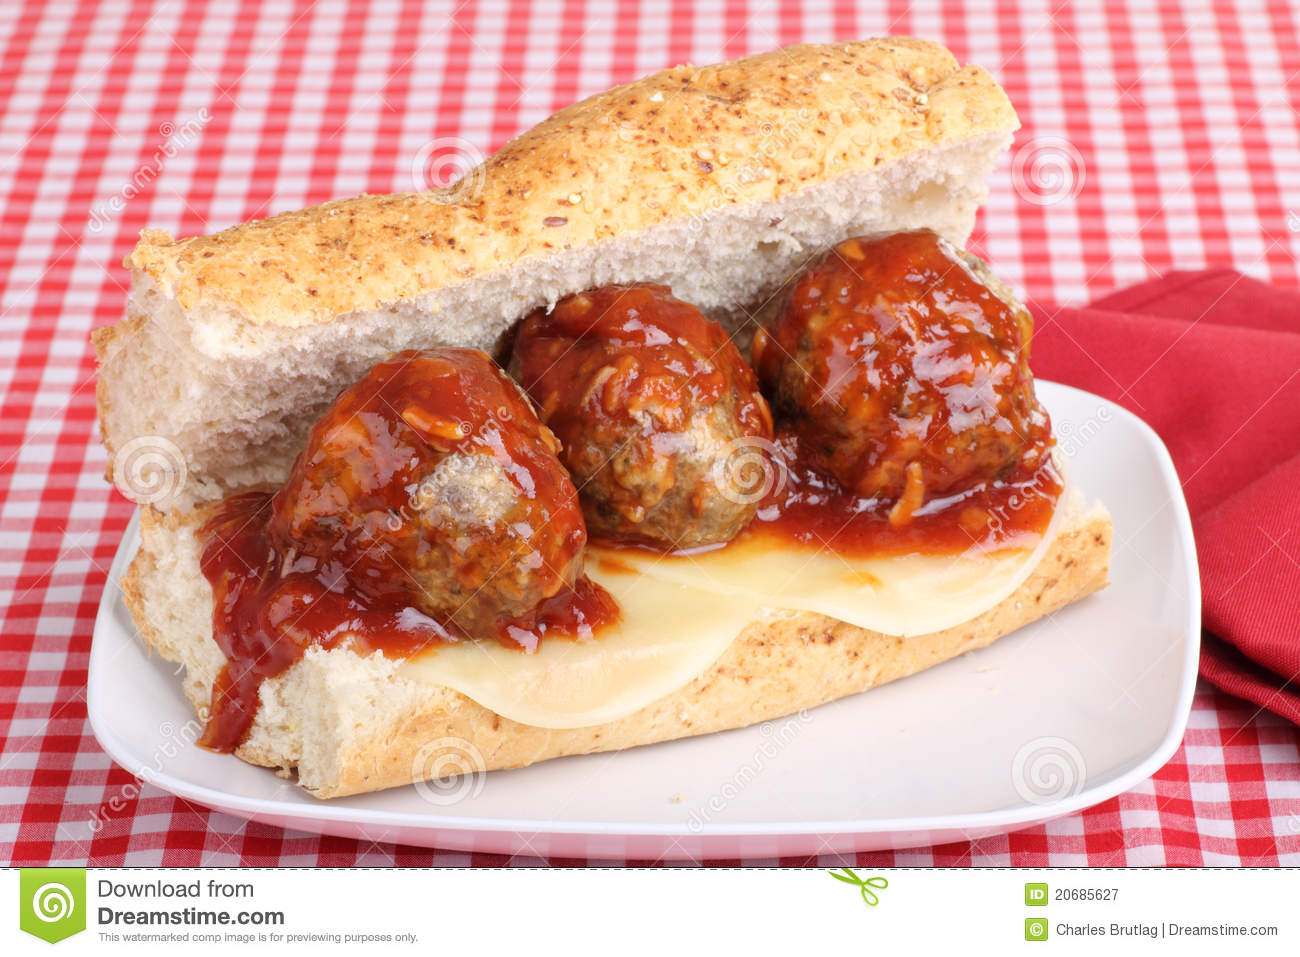 Meatball Sandwich Royalty Free Stock Photography - Image: 20685627